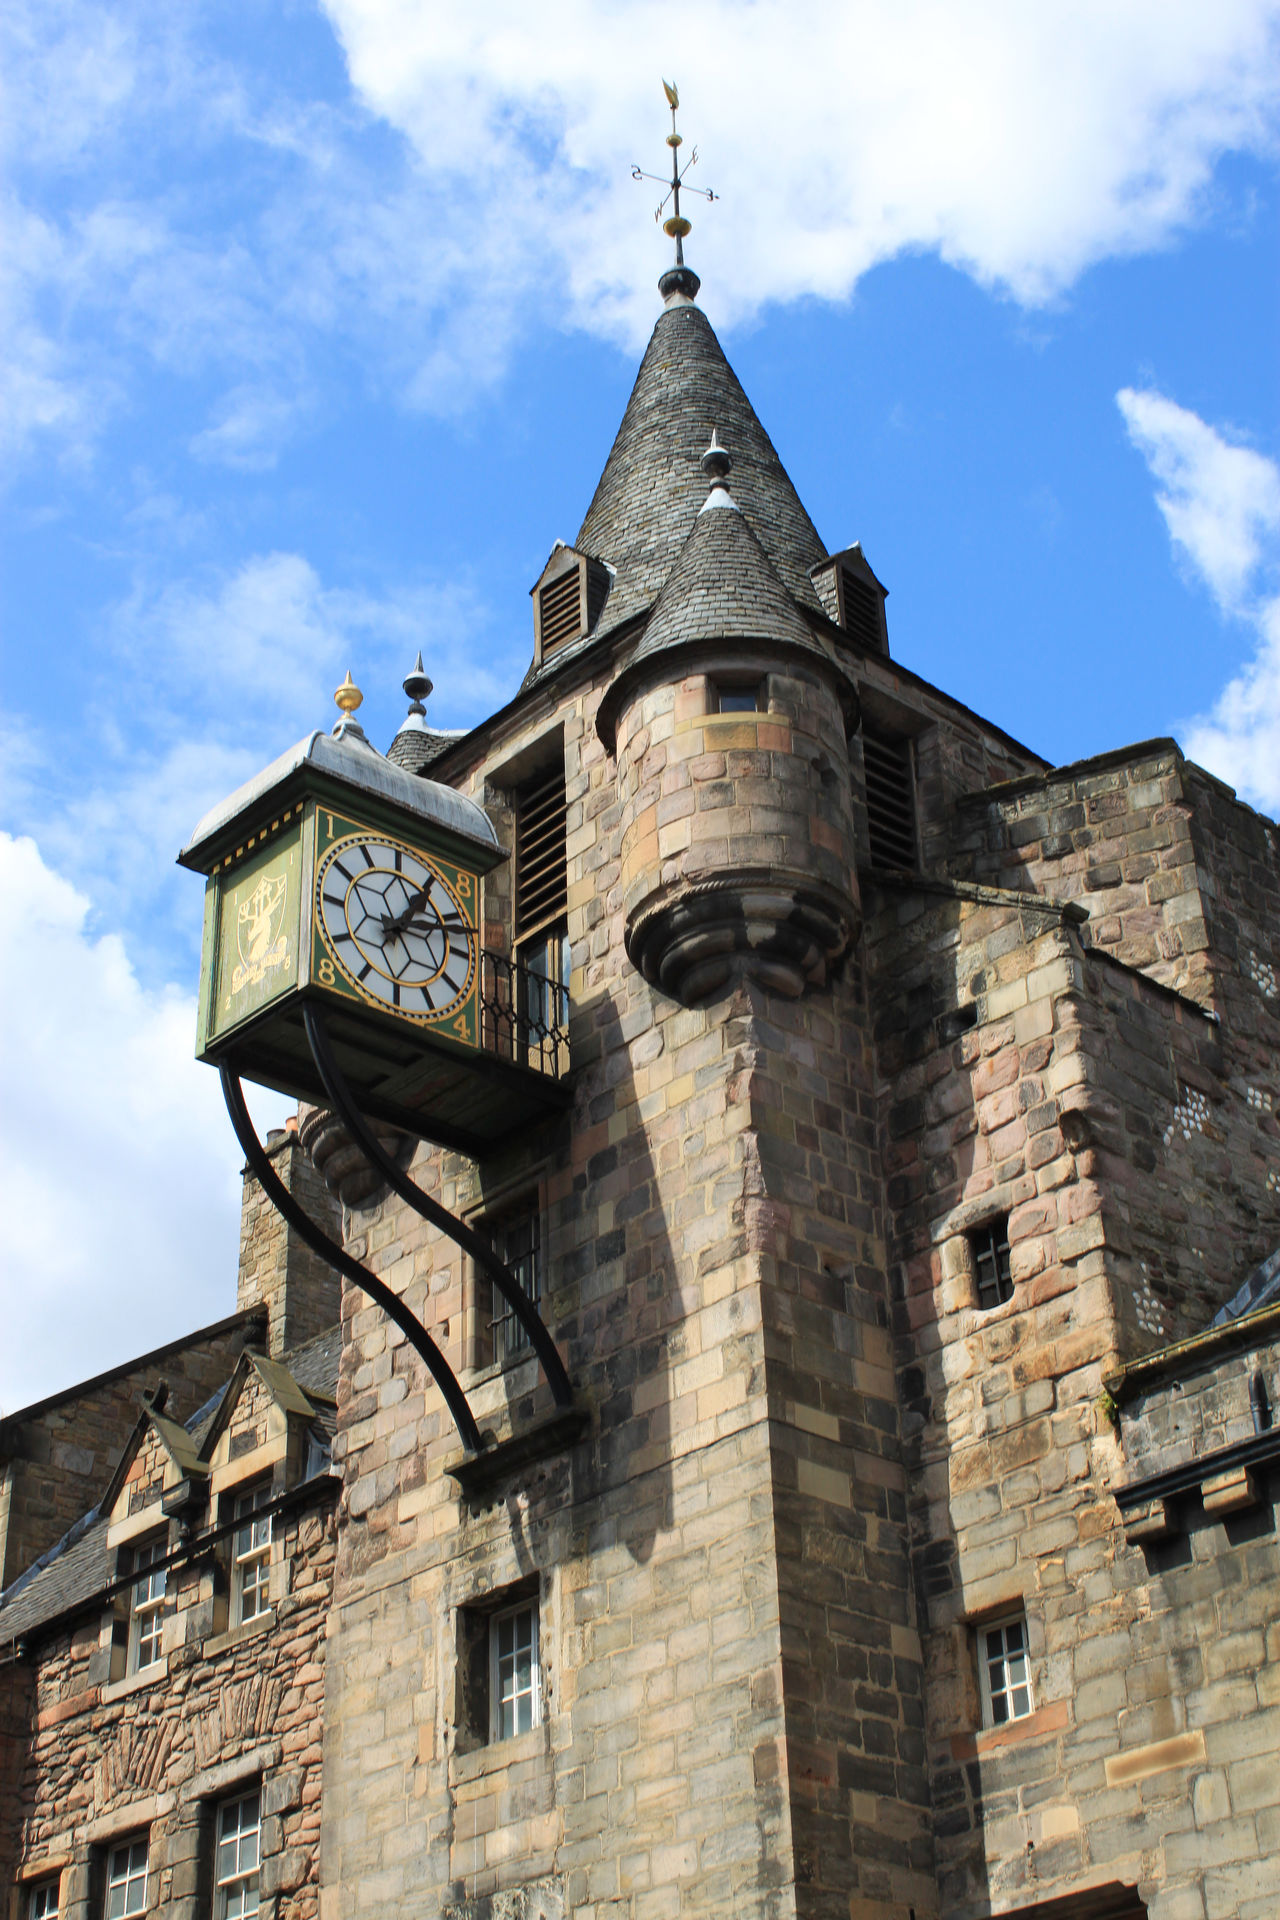 a low angle view on a clock tower in Edinburgh Architecture Built Structure Carpe Diem Clock Clock Tower Cloud - Sky Edinburgh Himmel Historisch History Low Angle View Medieval Mittelalter Old Sky Time Tower Turm Turmuhr Uhr Wolken Zeit